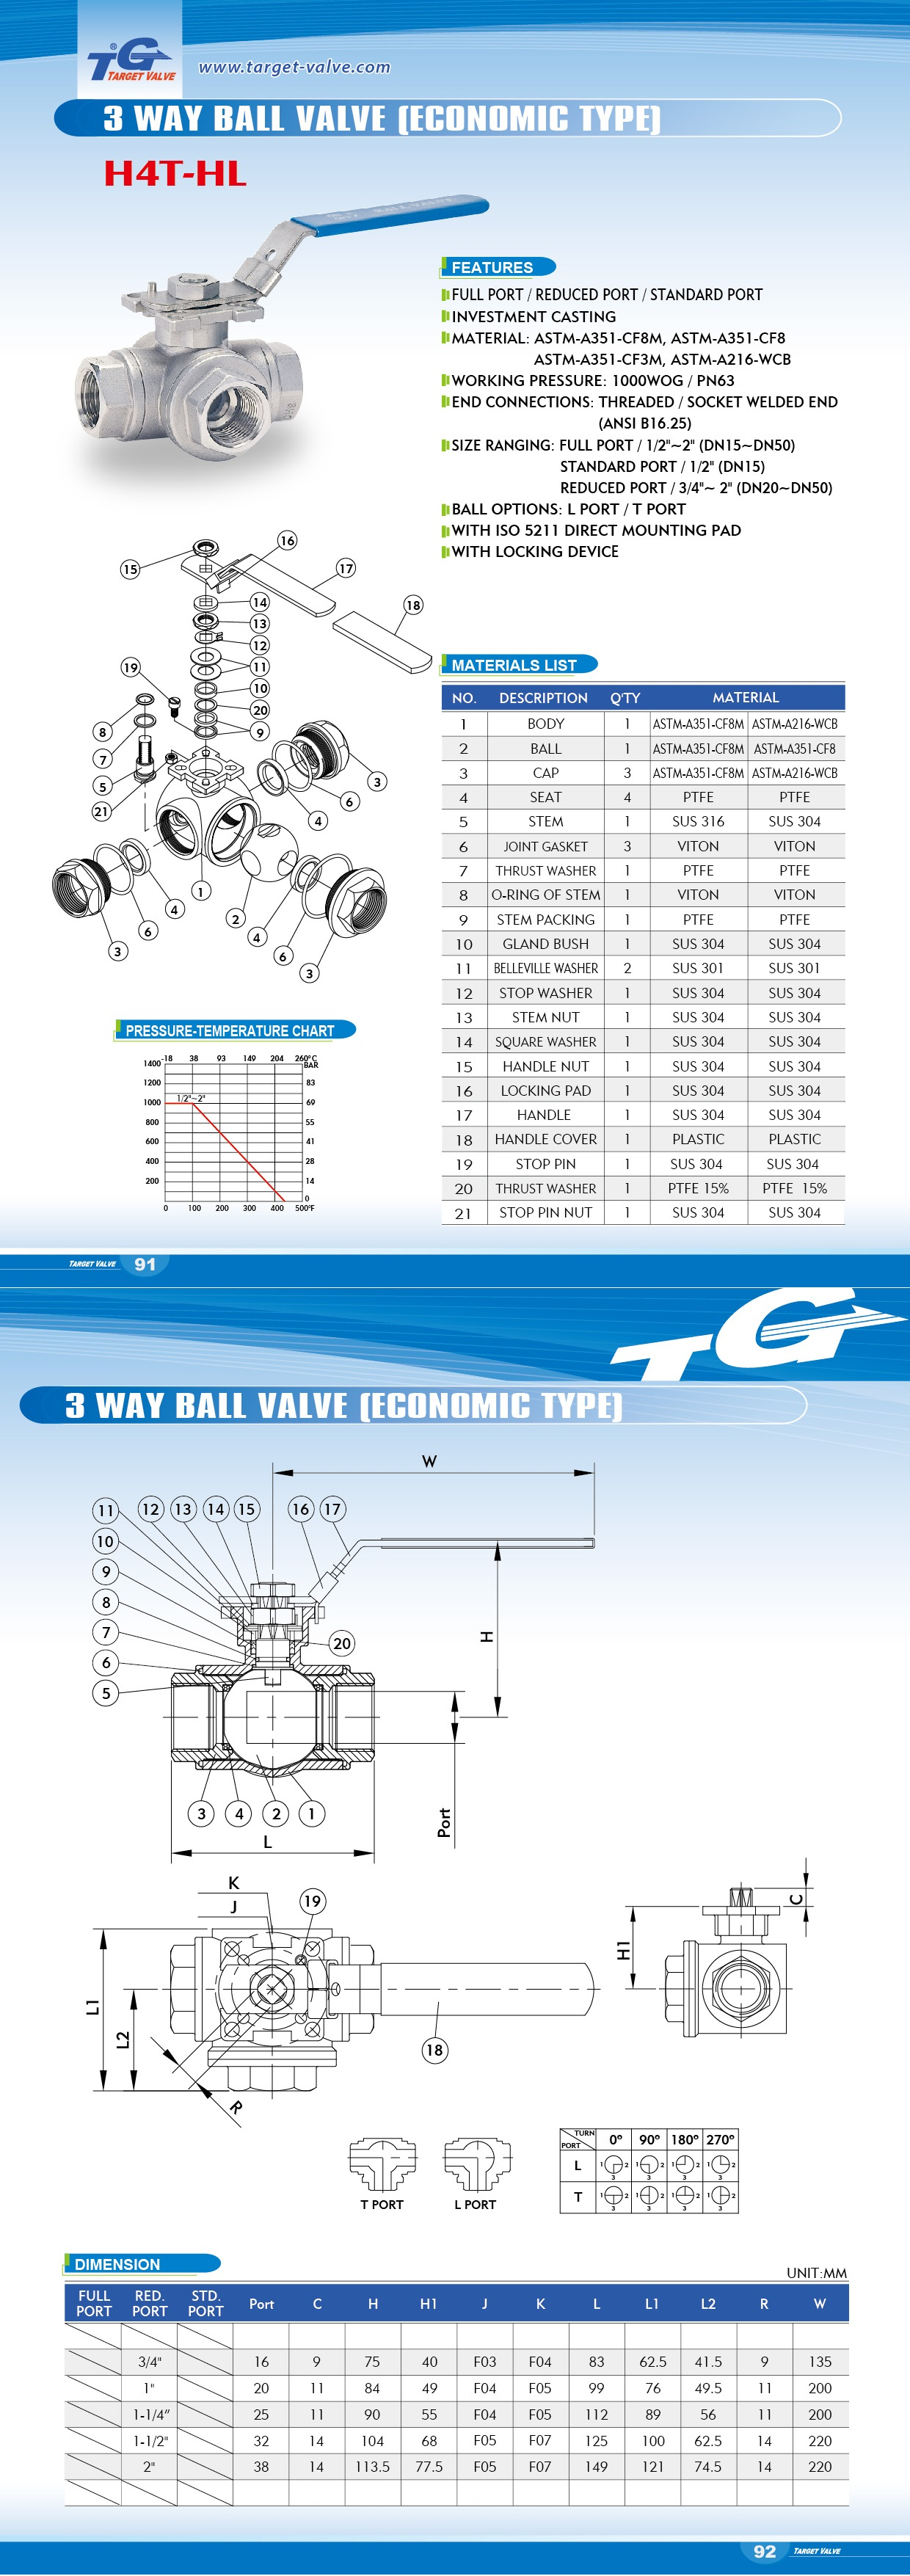 4 PC BALL VALVE - H4T (REDUCED PORT)